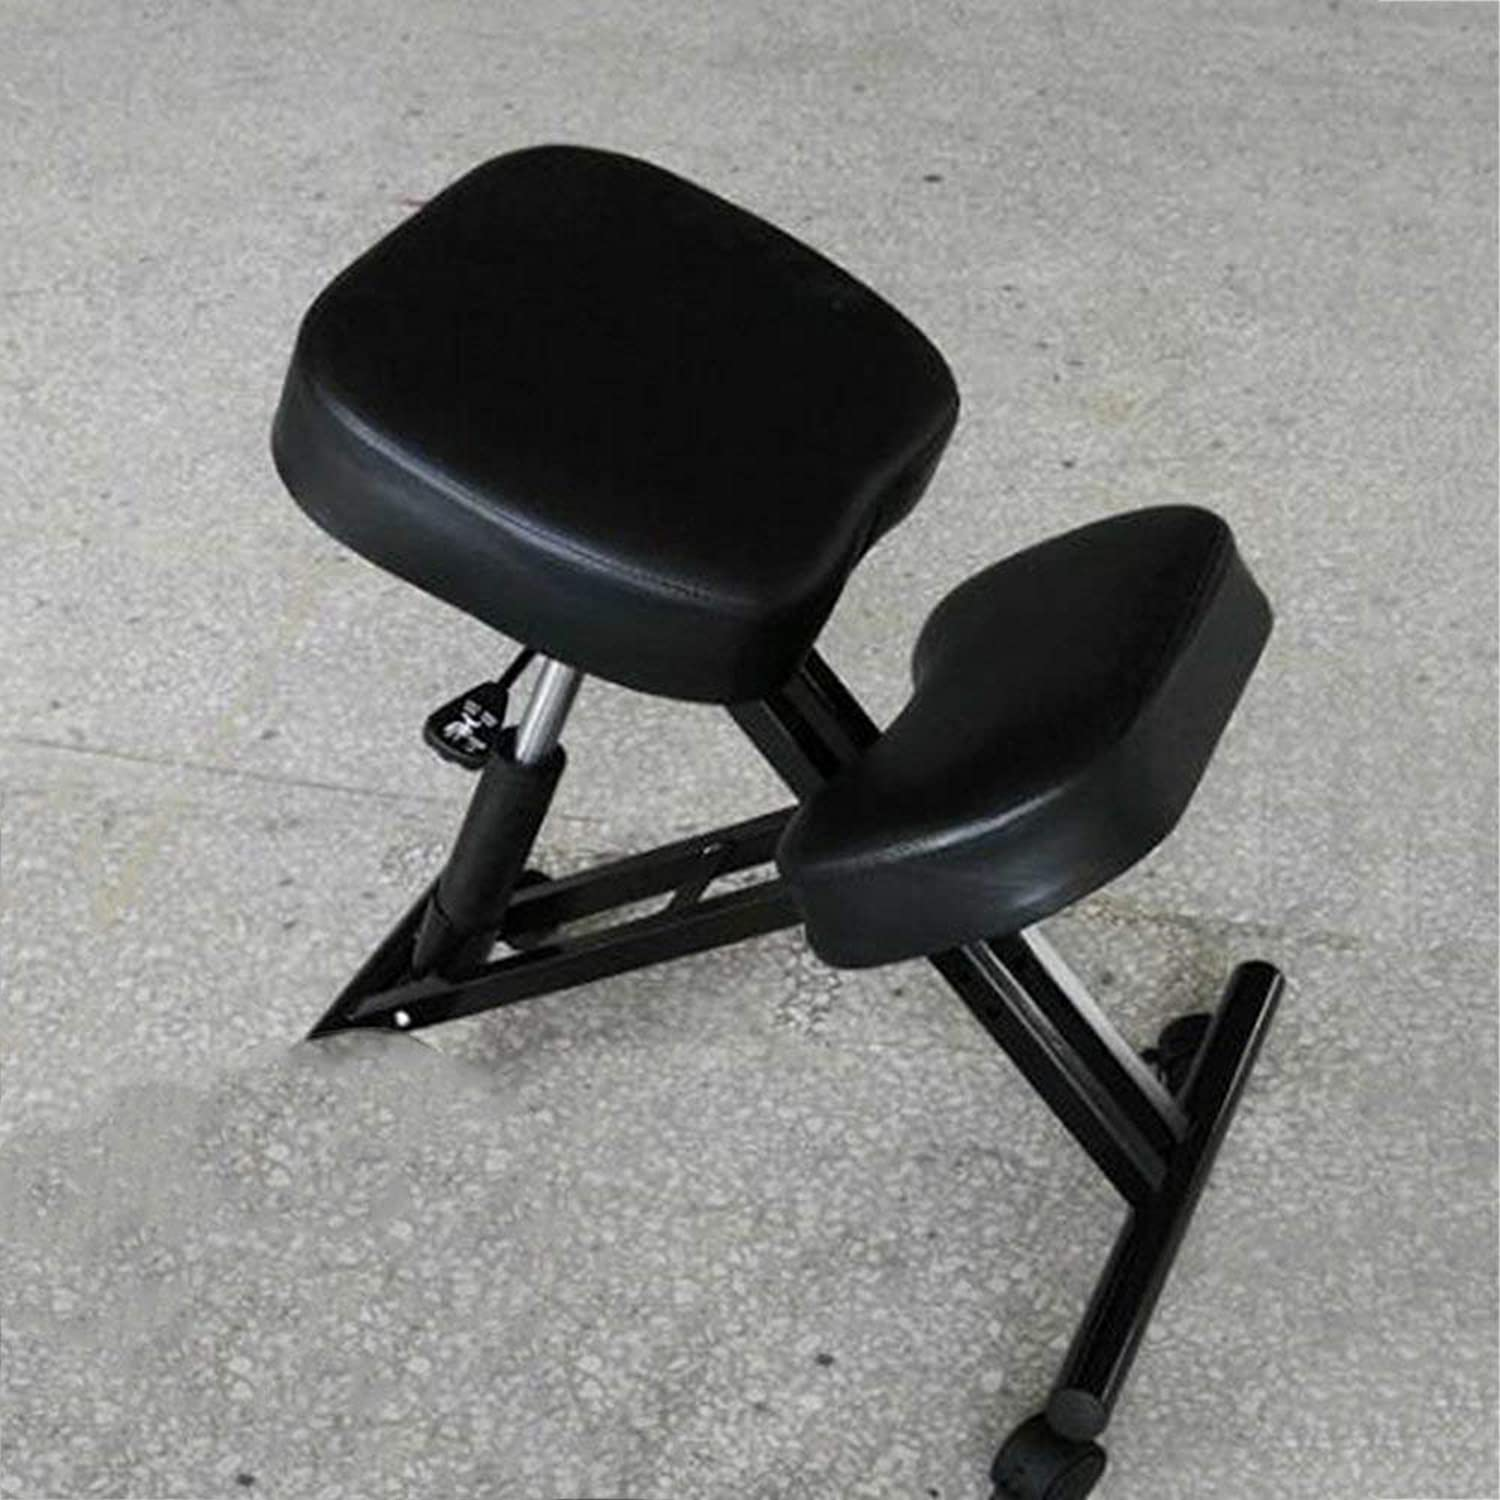 QTQZ Brisk-Sitting Position Orthopedic Chair The Brain Chair Anti-Hump Ergonomics (color  Blakc)